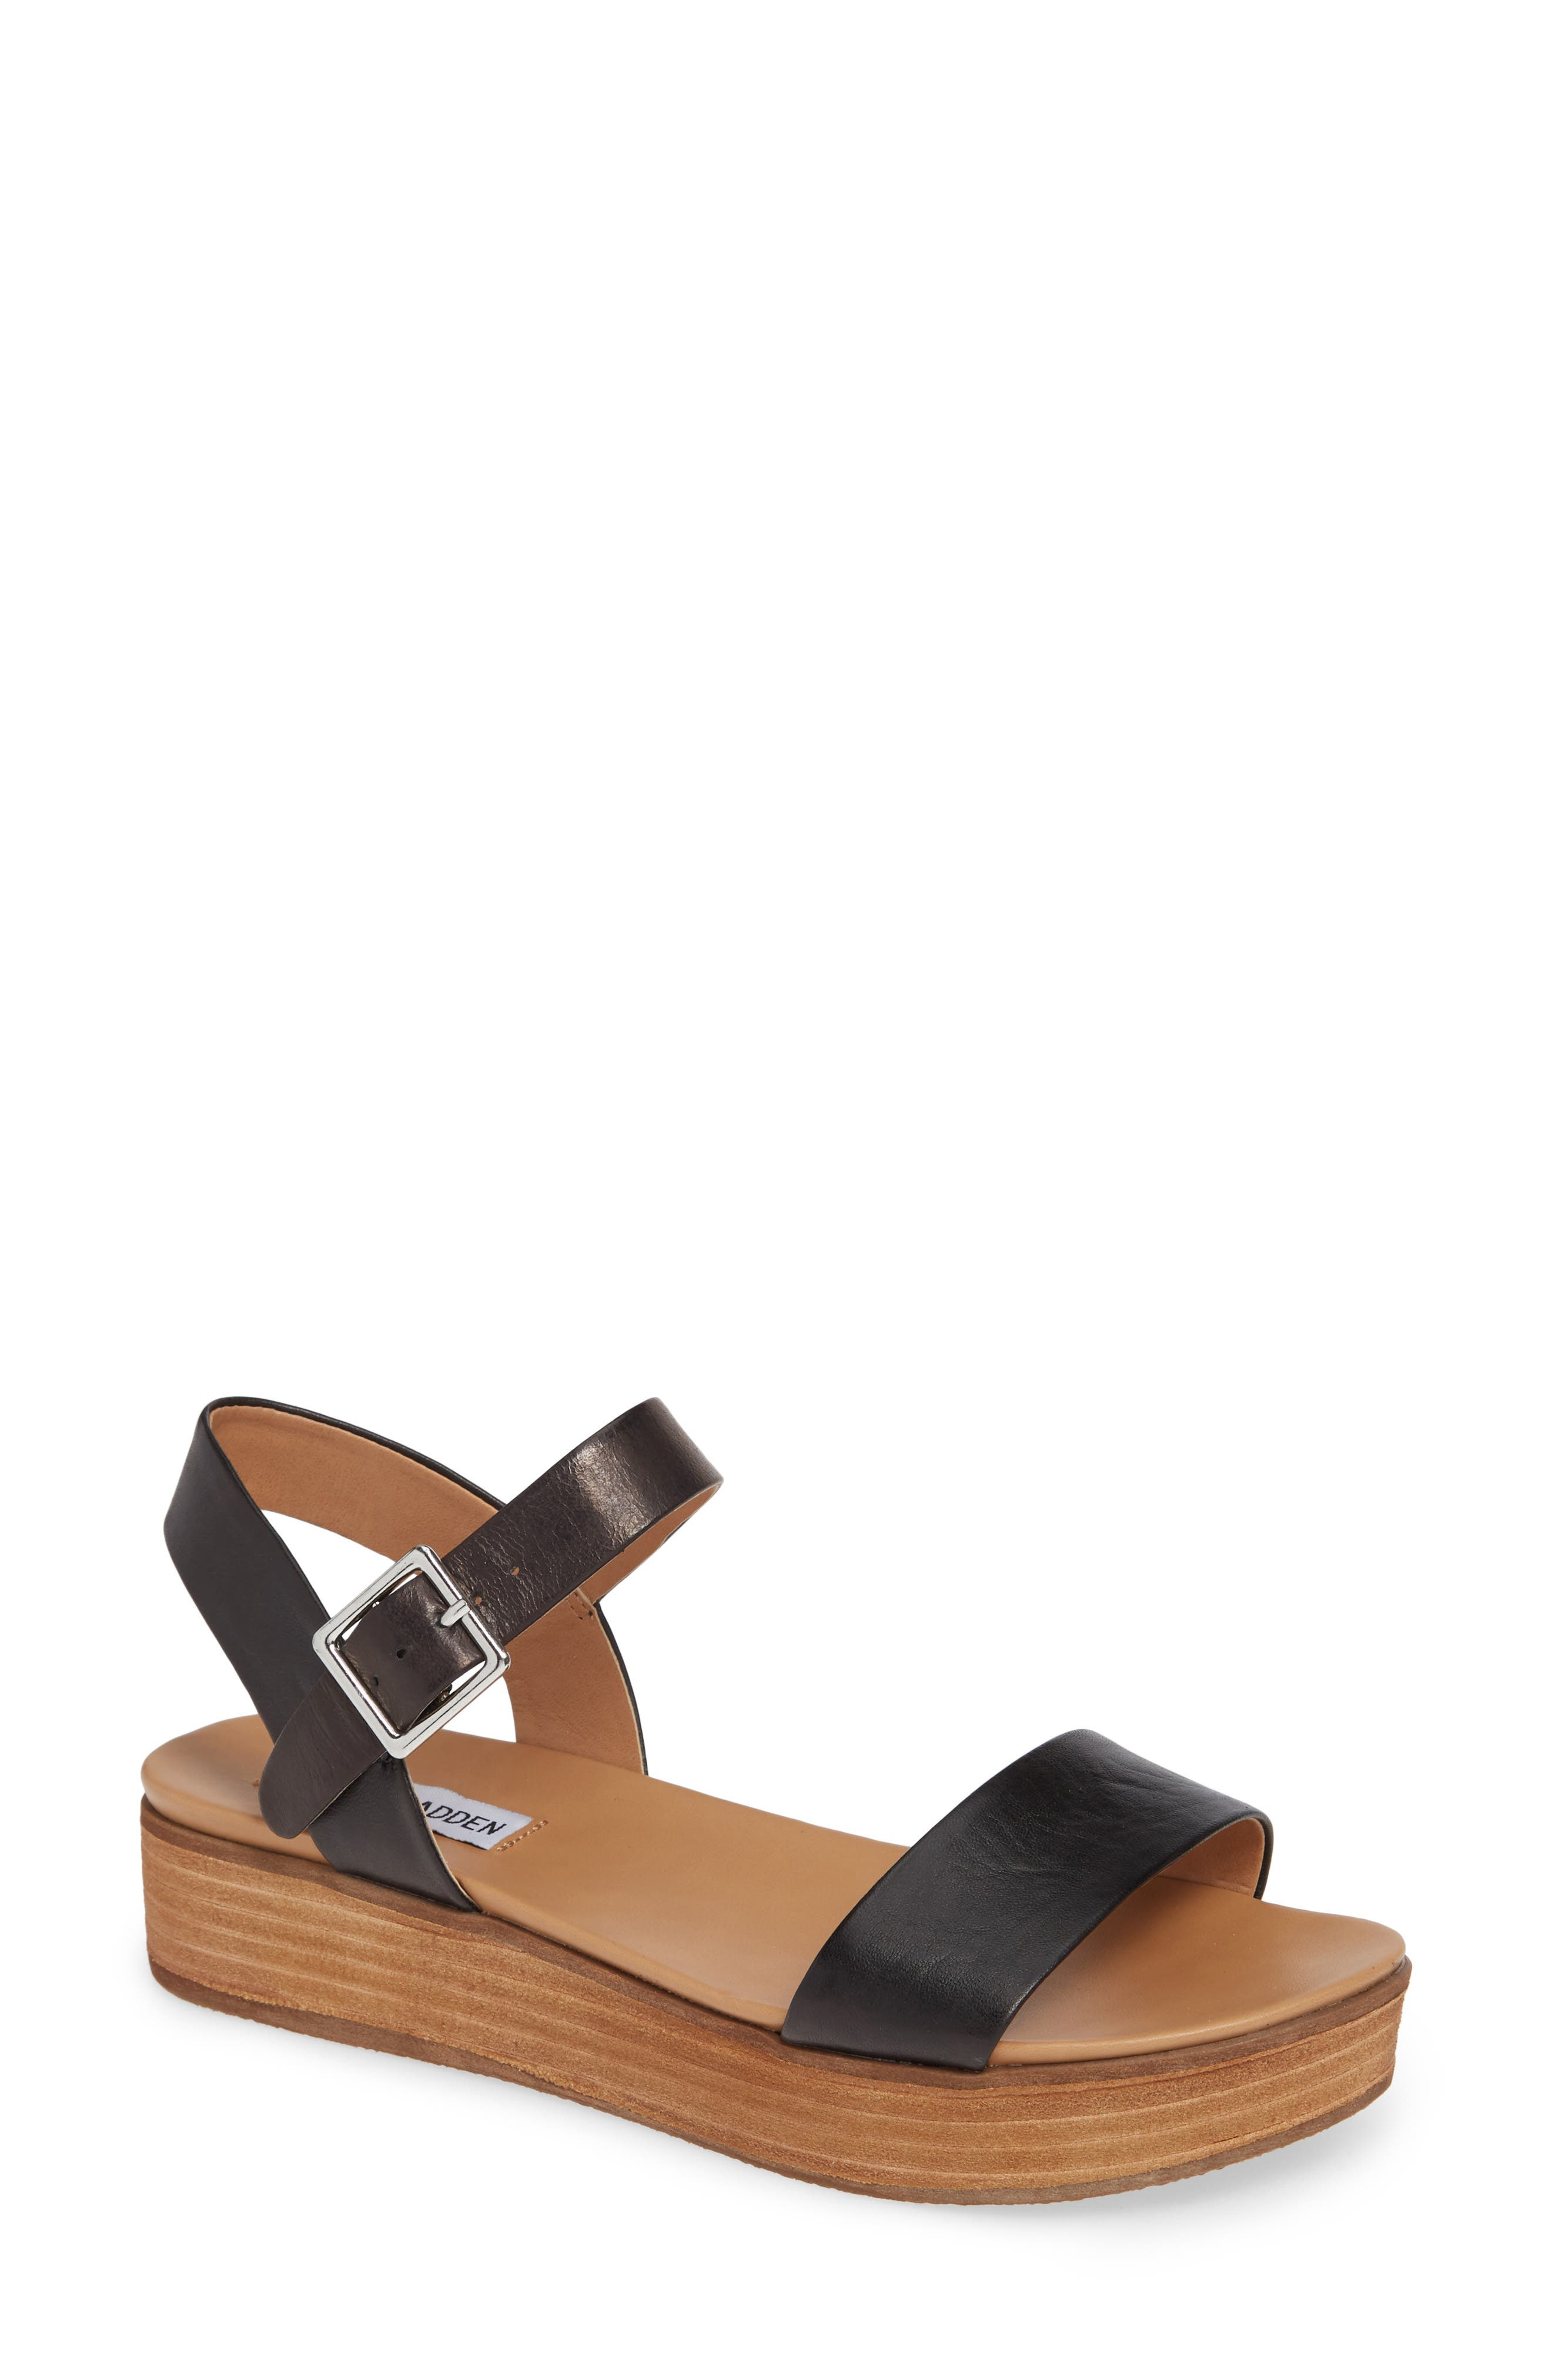 Aida Platform Sandal,                         Main,                         color, BLACK LEATHER